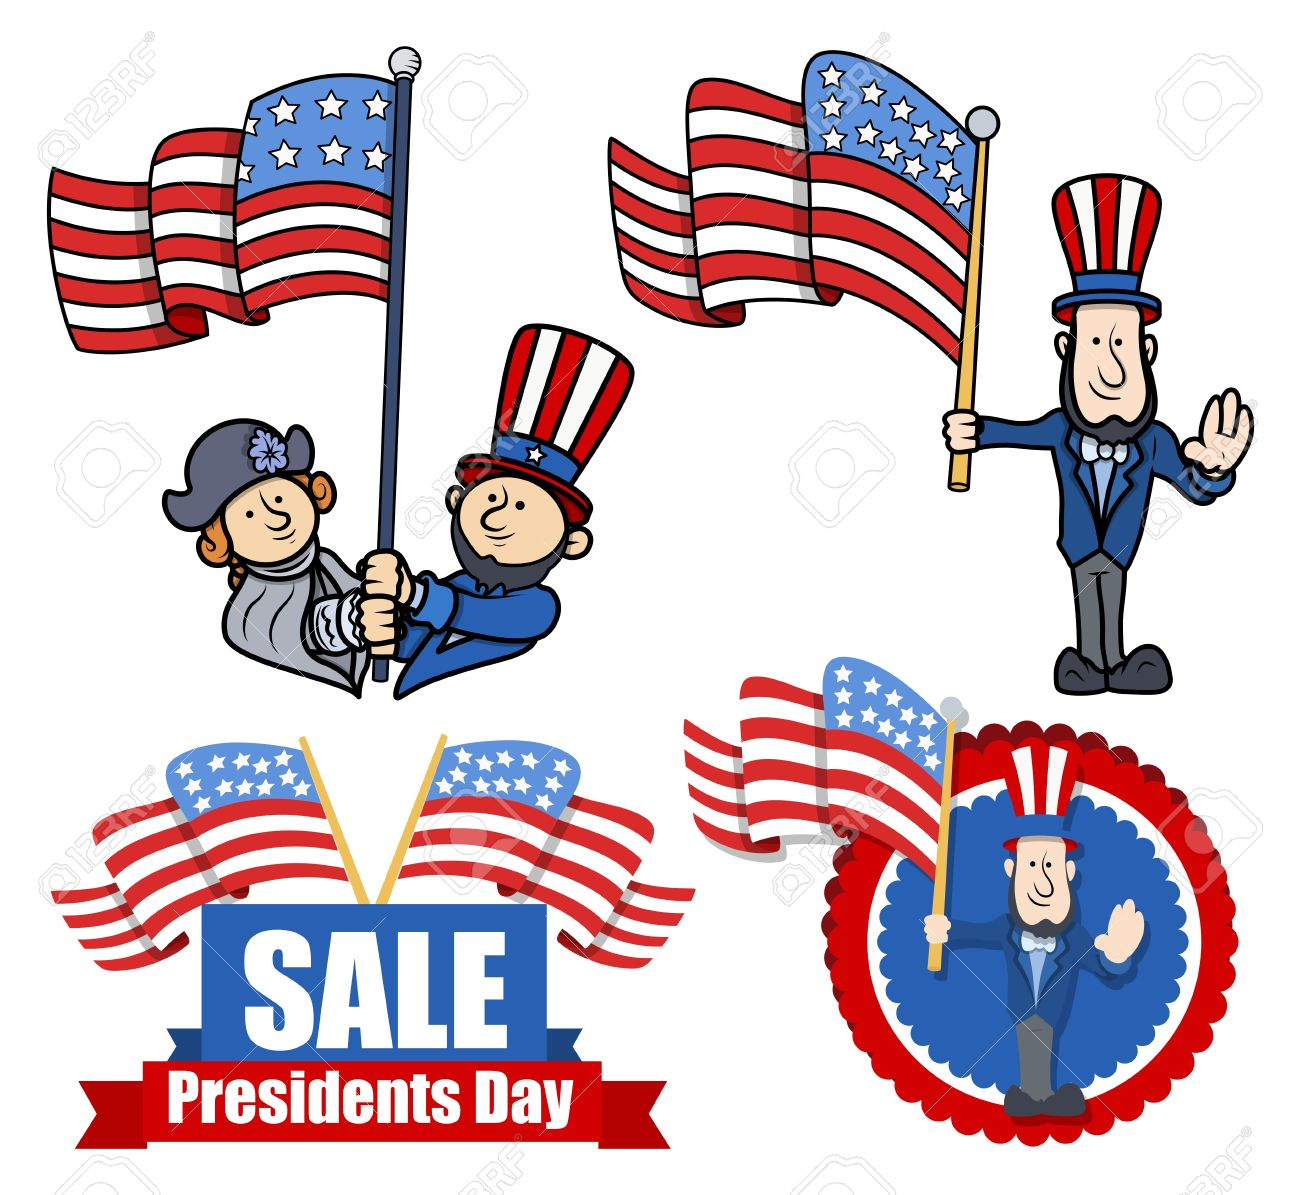 Clipart presidents united states image USA Presidents Clip Art – Clipart Free Download image